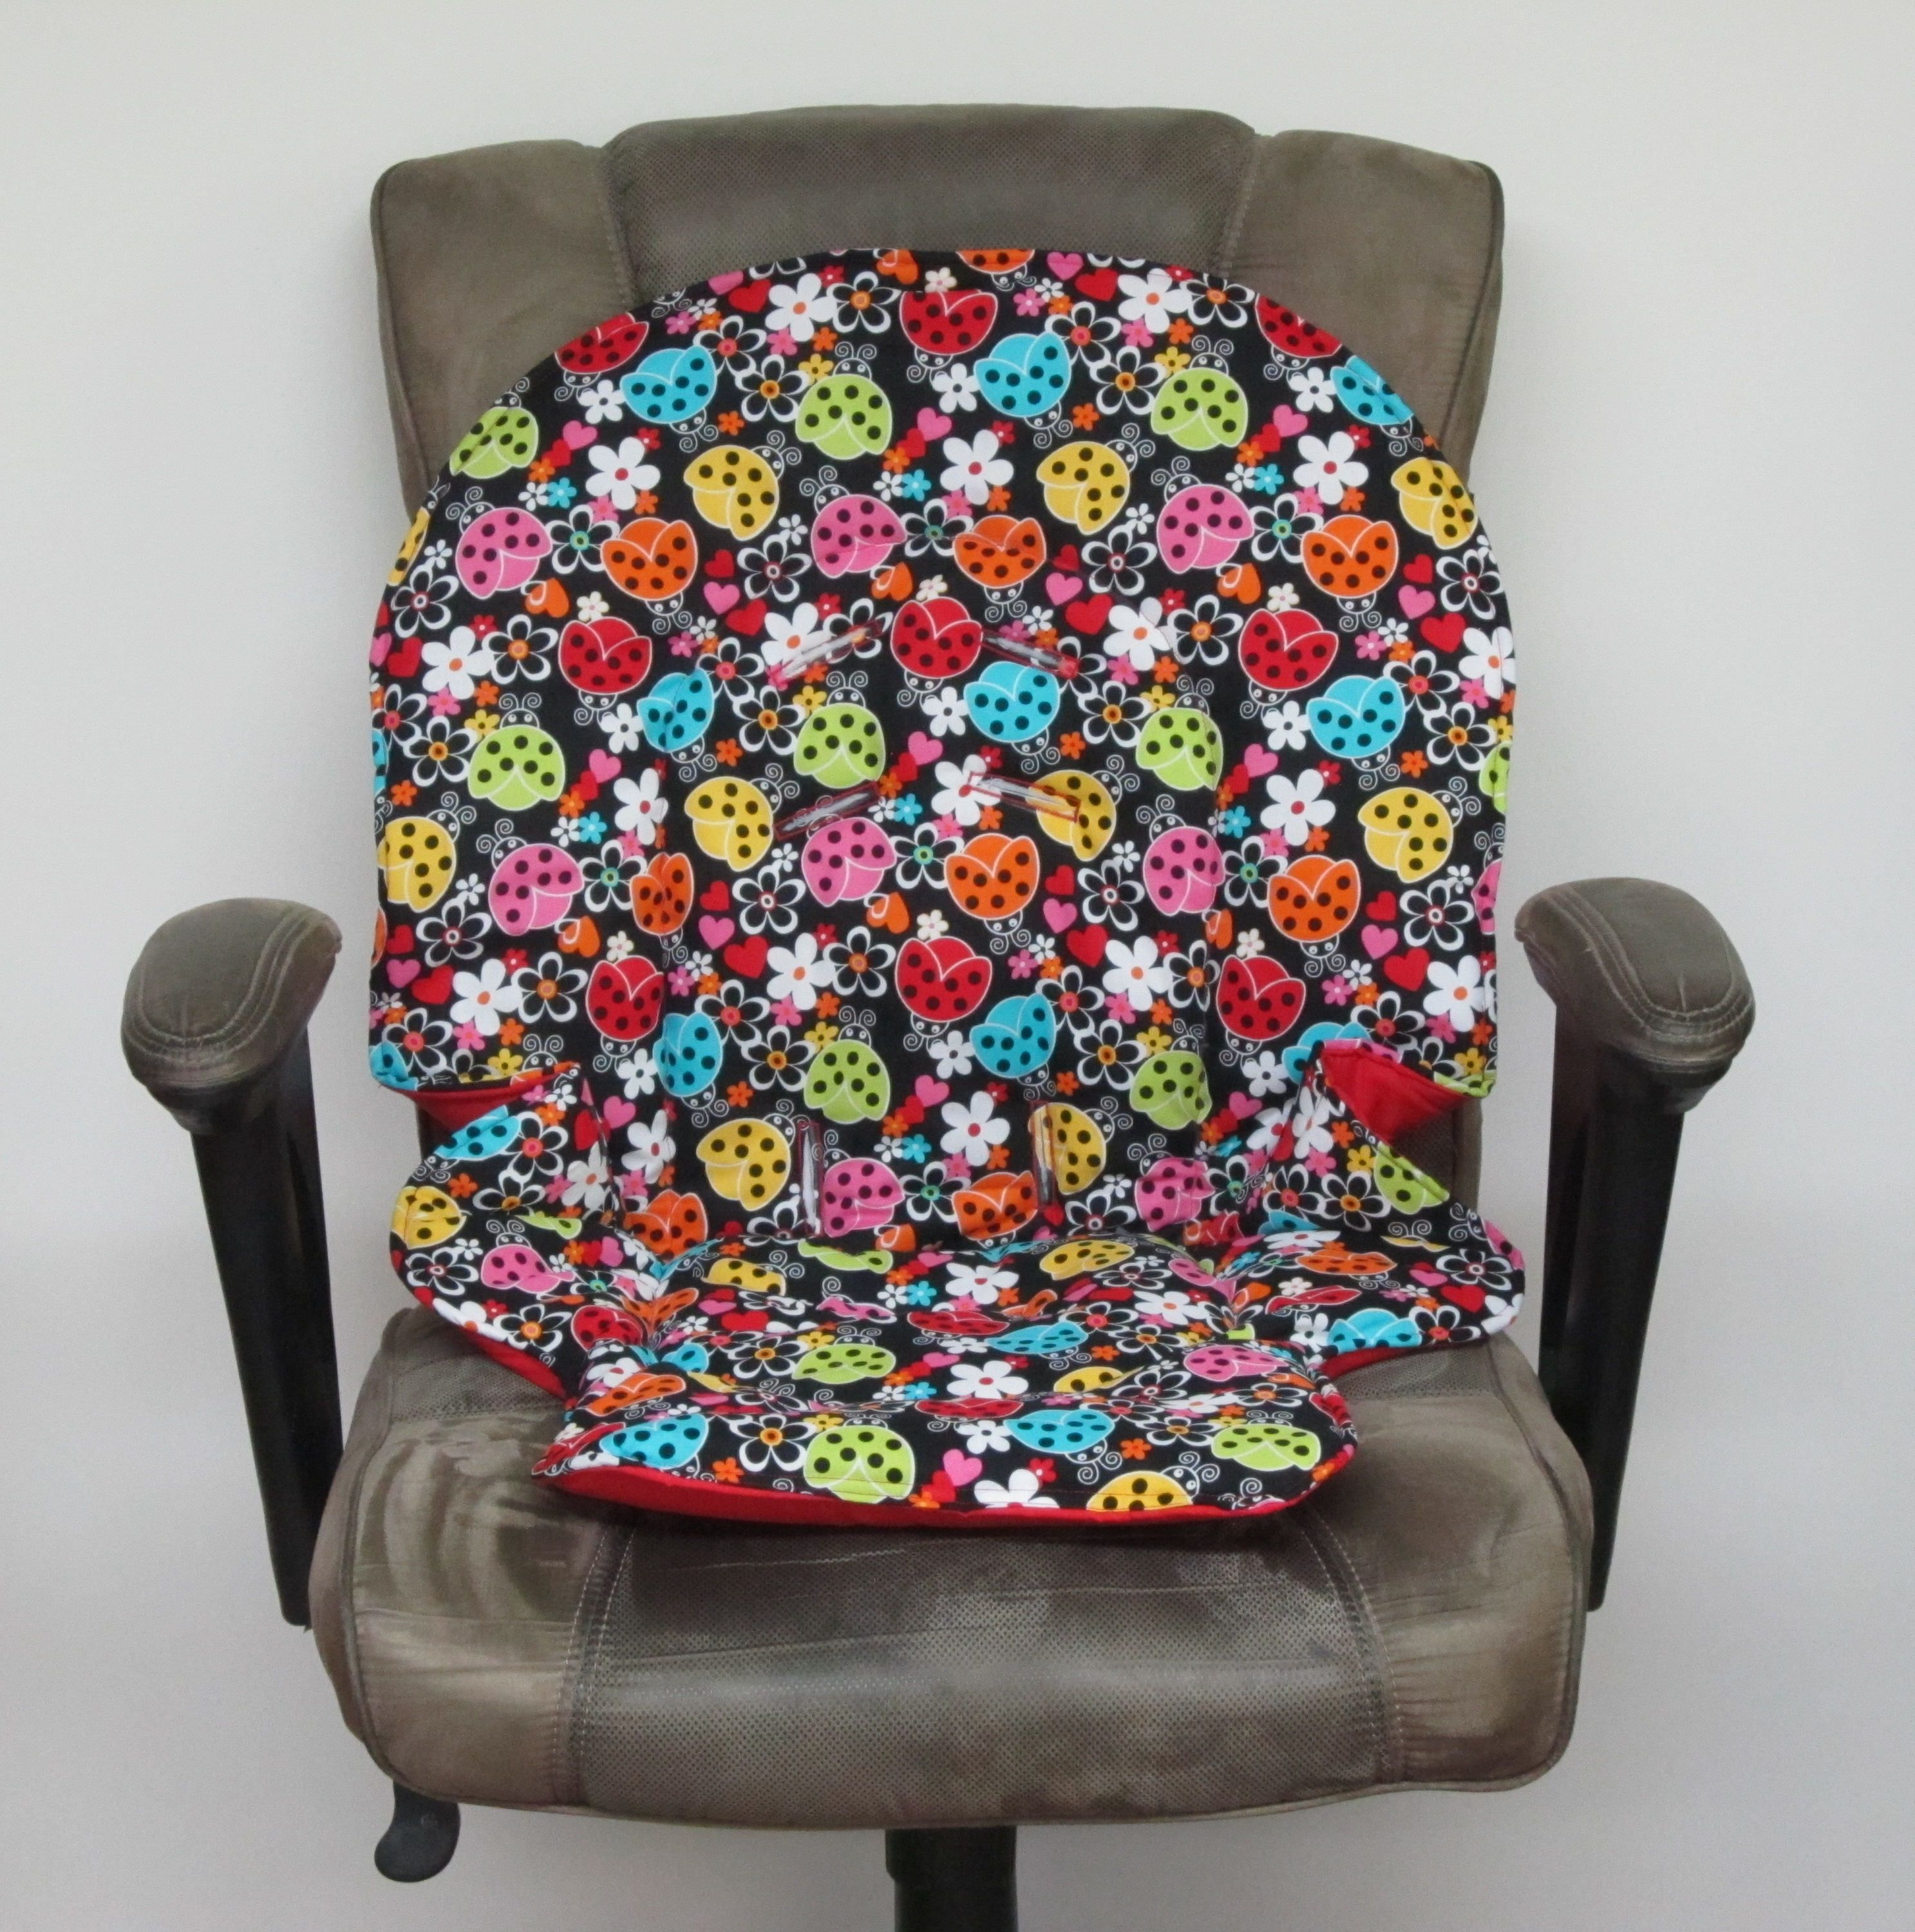 graco duodiner high chair cover replacement ergonomic sydney or blossom highchair pad baby accessory